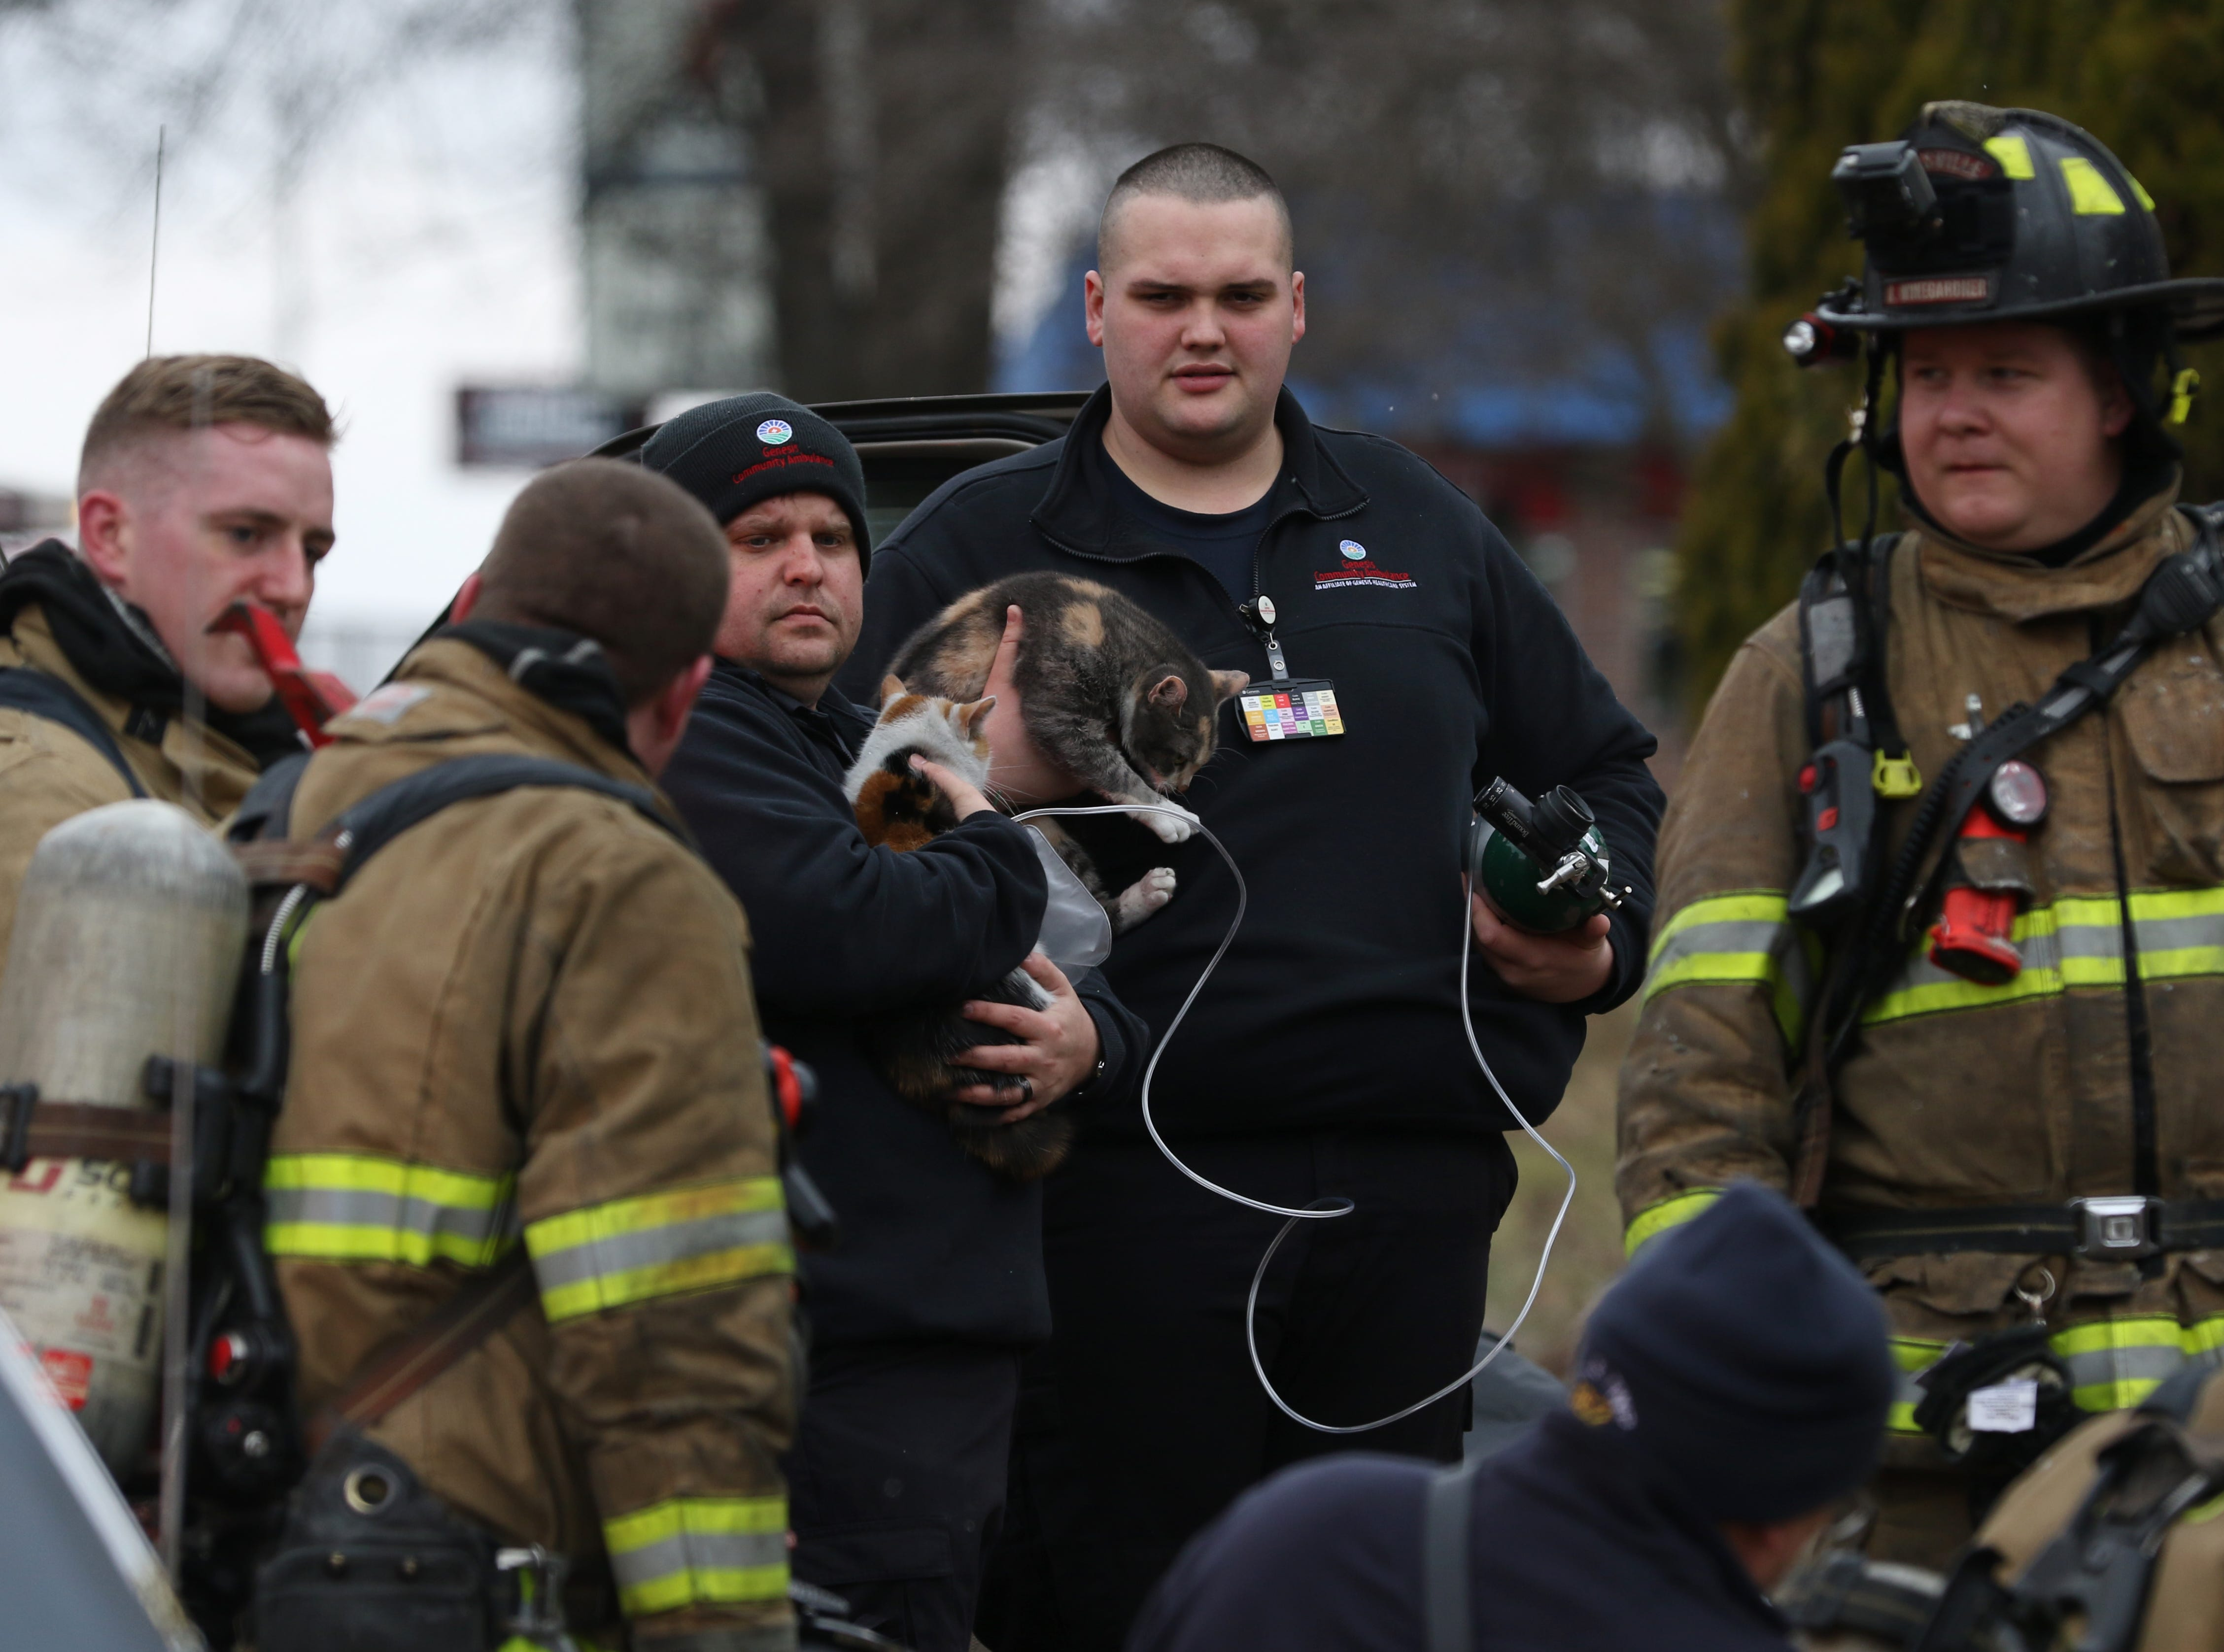 The Zanesville Fire Department fought a fire at 924 Maple Avenue in Zanesville Monday afternoon. Two people were taken to the hospital because of the blaze. Community Ambulance personel administered oxygen to a pair of cats rescued from the fire. A third cat was unaccounted for after the fire.